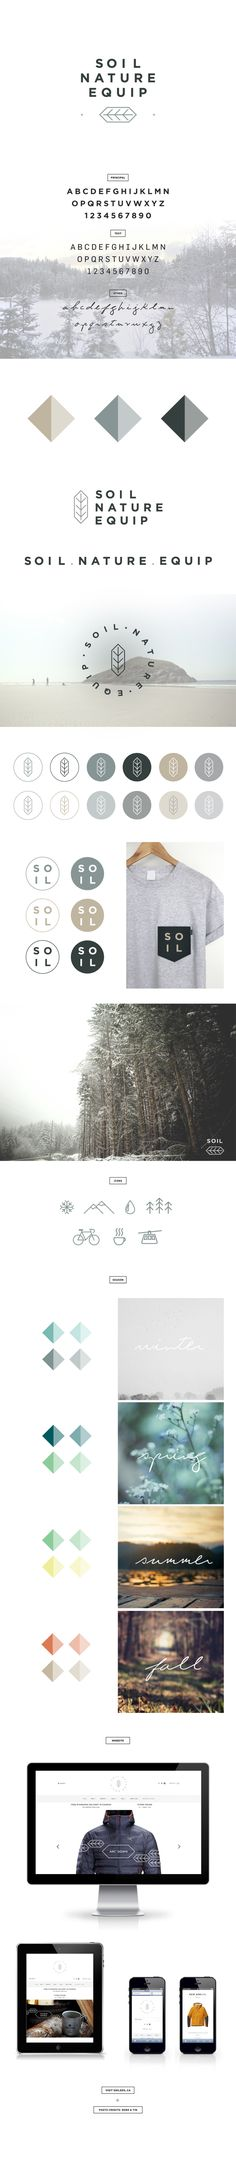 SOIL NATURE EQUIP by Eliane Cadieux, via Behance